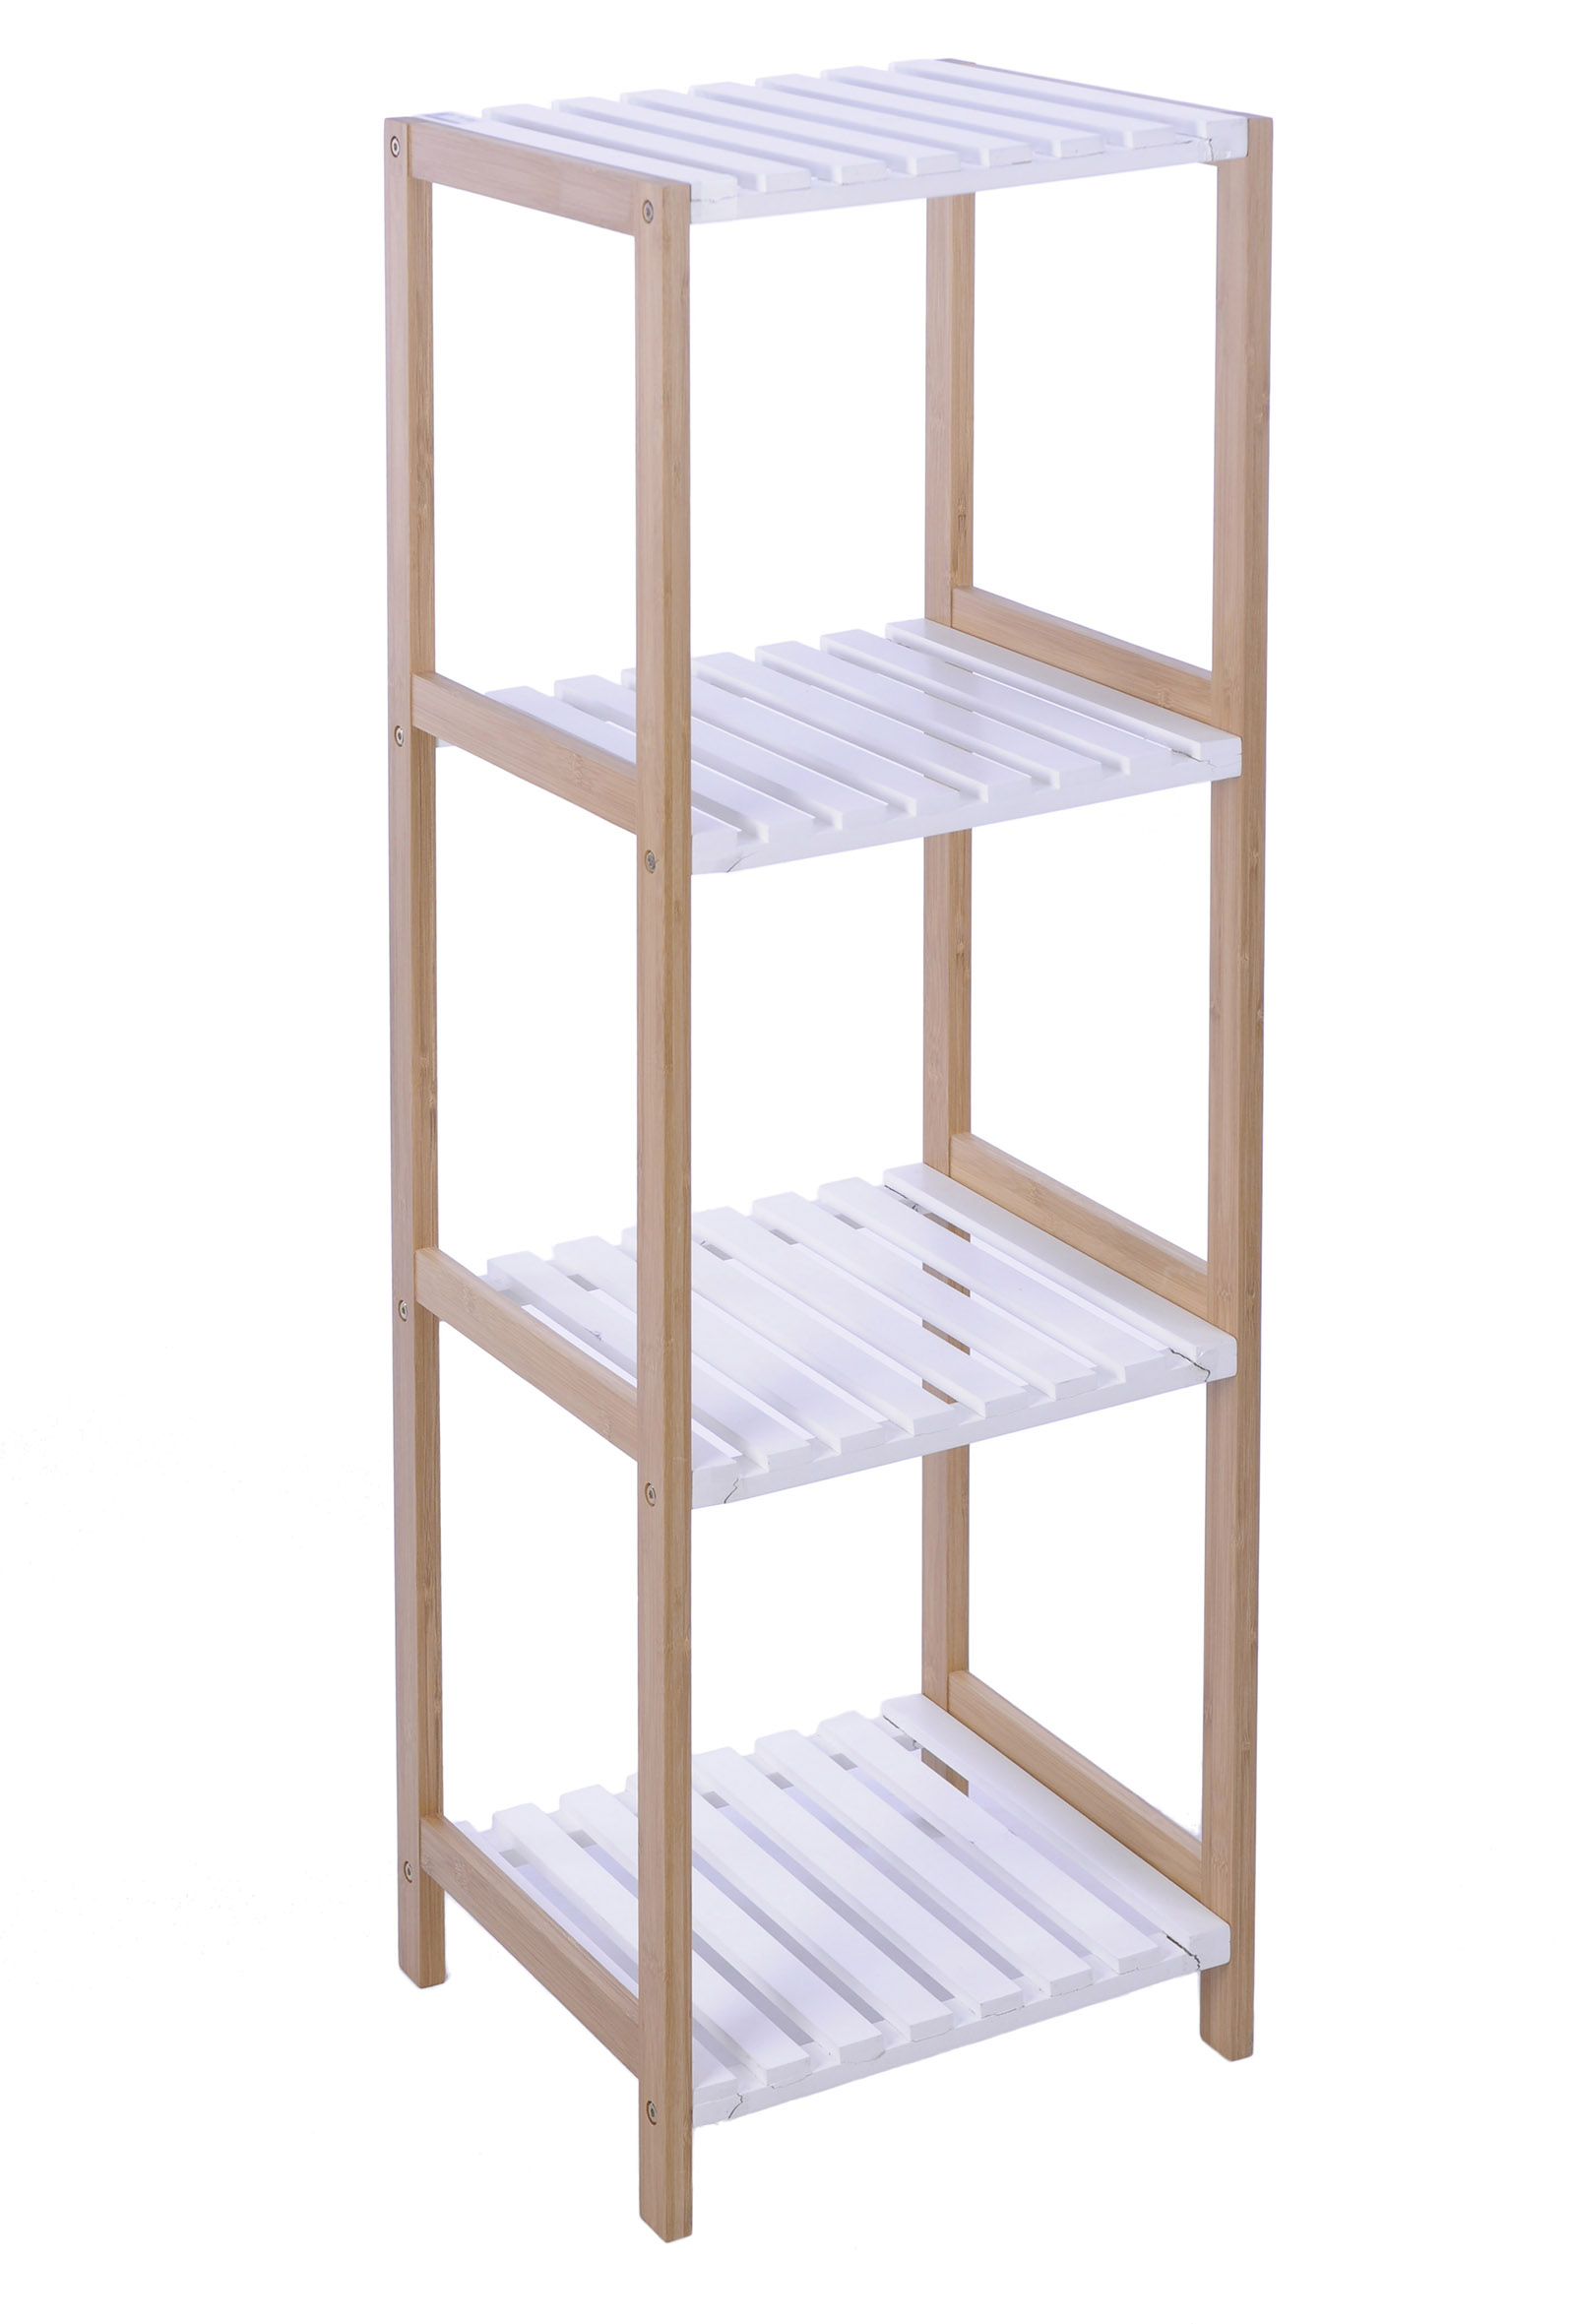 Bathroom shelf rack standing wooden bamboo white natural 3 - Etagere salle de bain ventouse ...